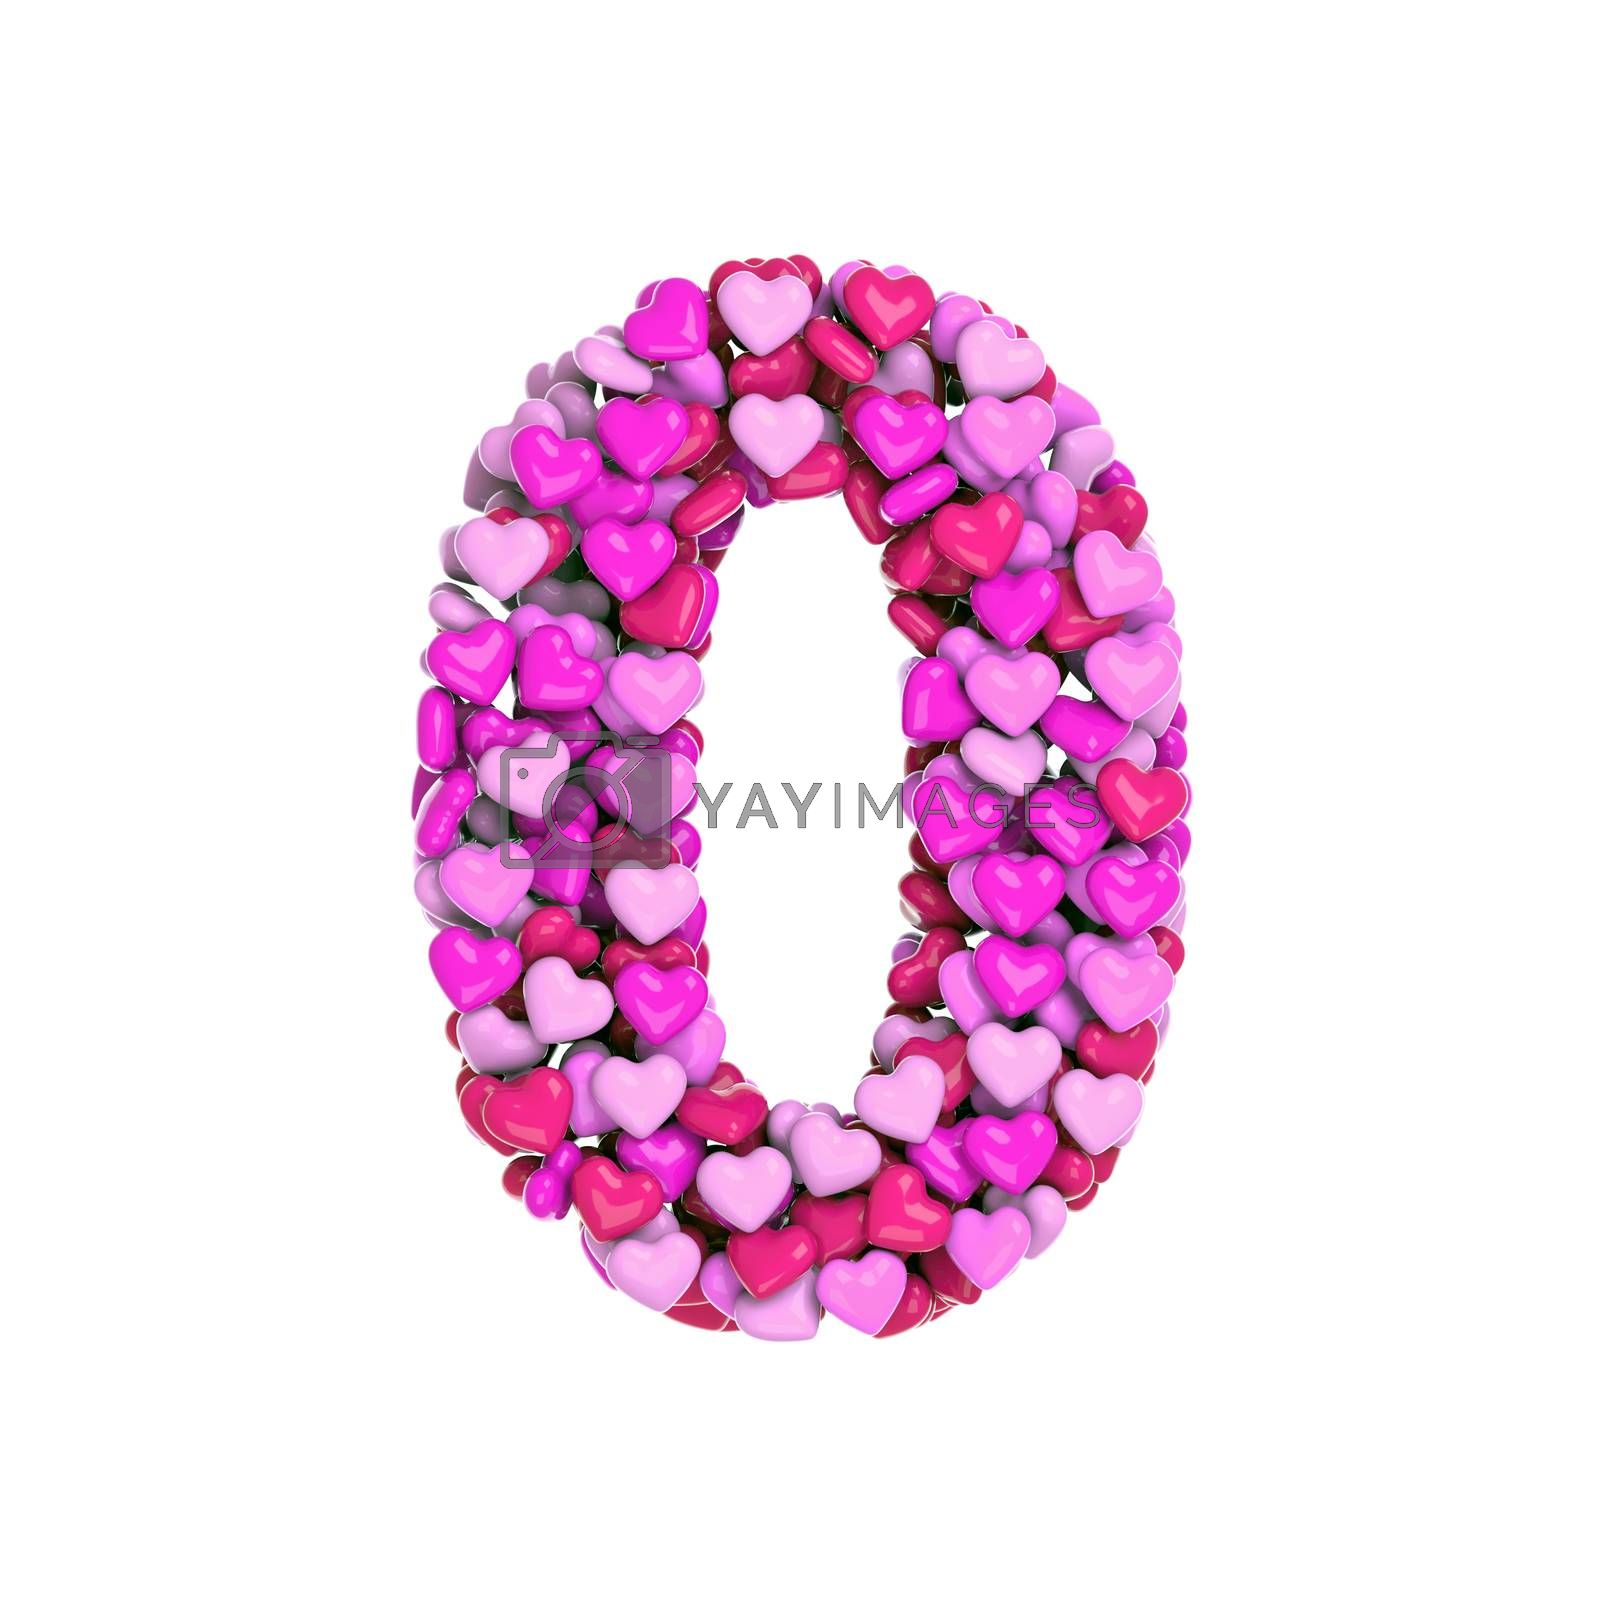 Valentine number 0 -  3d pink hearts digit - Love, passion or wedding concept by chrisroll